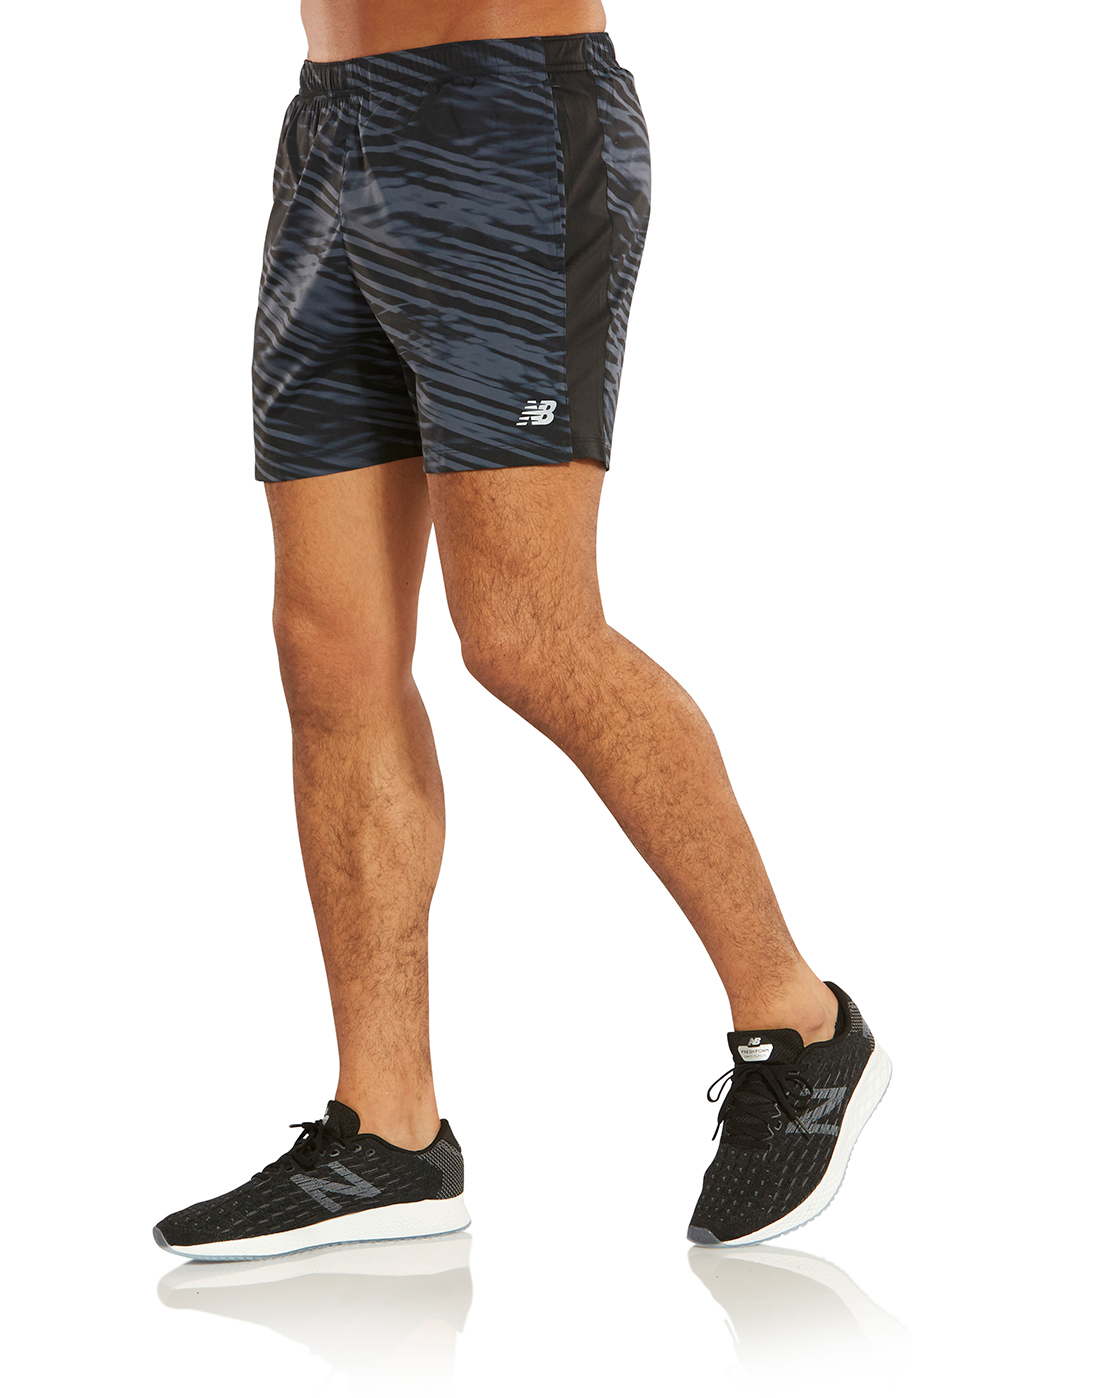 116321737940d New Balance Mens Printed Accelerate 5 Inch Shorts   Life Style Sports